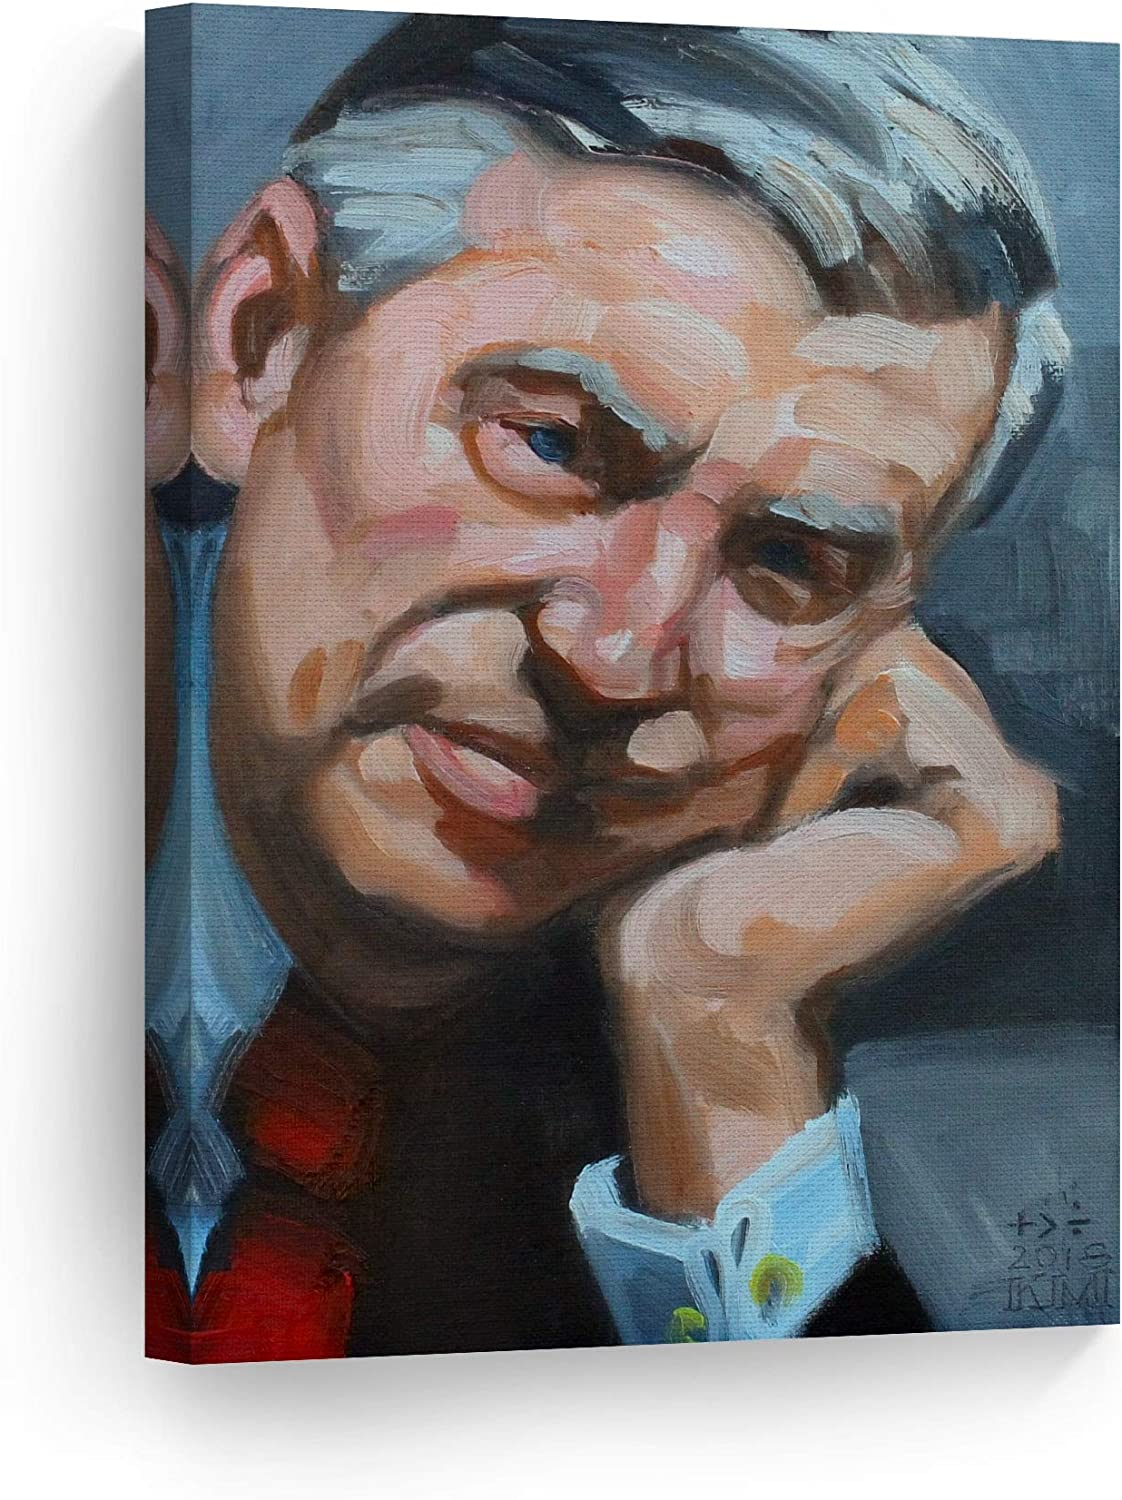 Amazon Com Smile Art Design Fred Rogers By Kenney Mencher Celebrity Portrait Oil Painting Canvas Print Living Room Decor Wall Art Bedroom Home Decor Artwork Ready To Hang Made In Usa 40x30